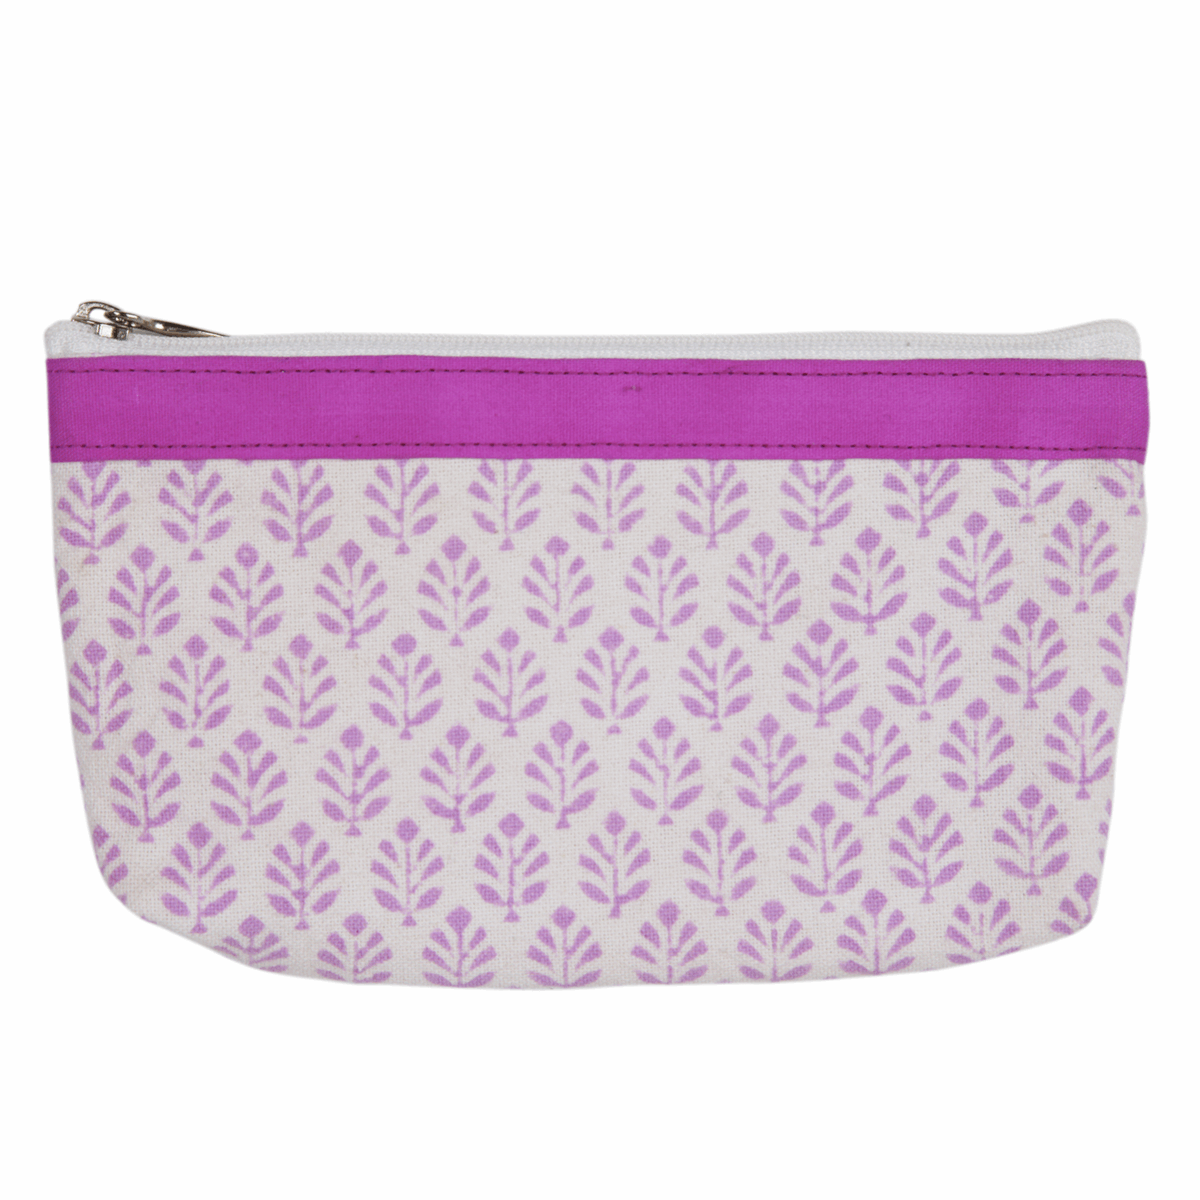 Picture of Reverie: Fabric Zipped Pouch: Small